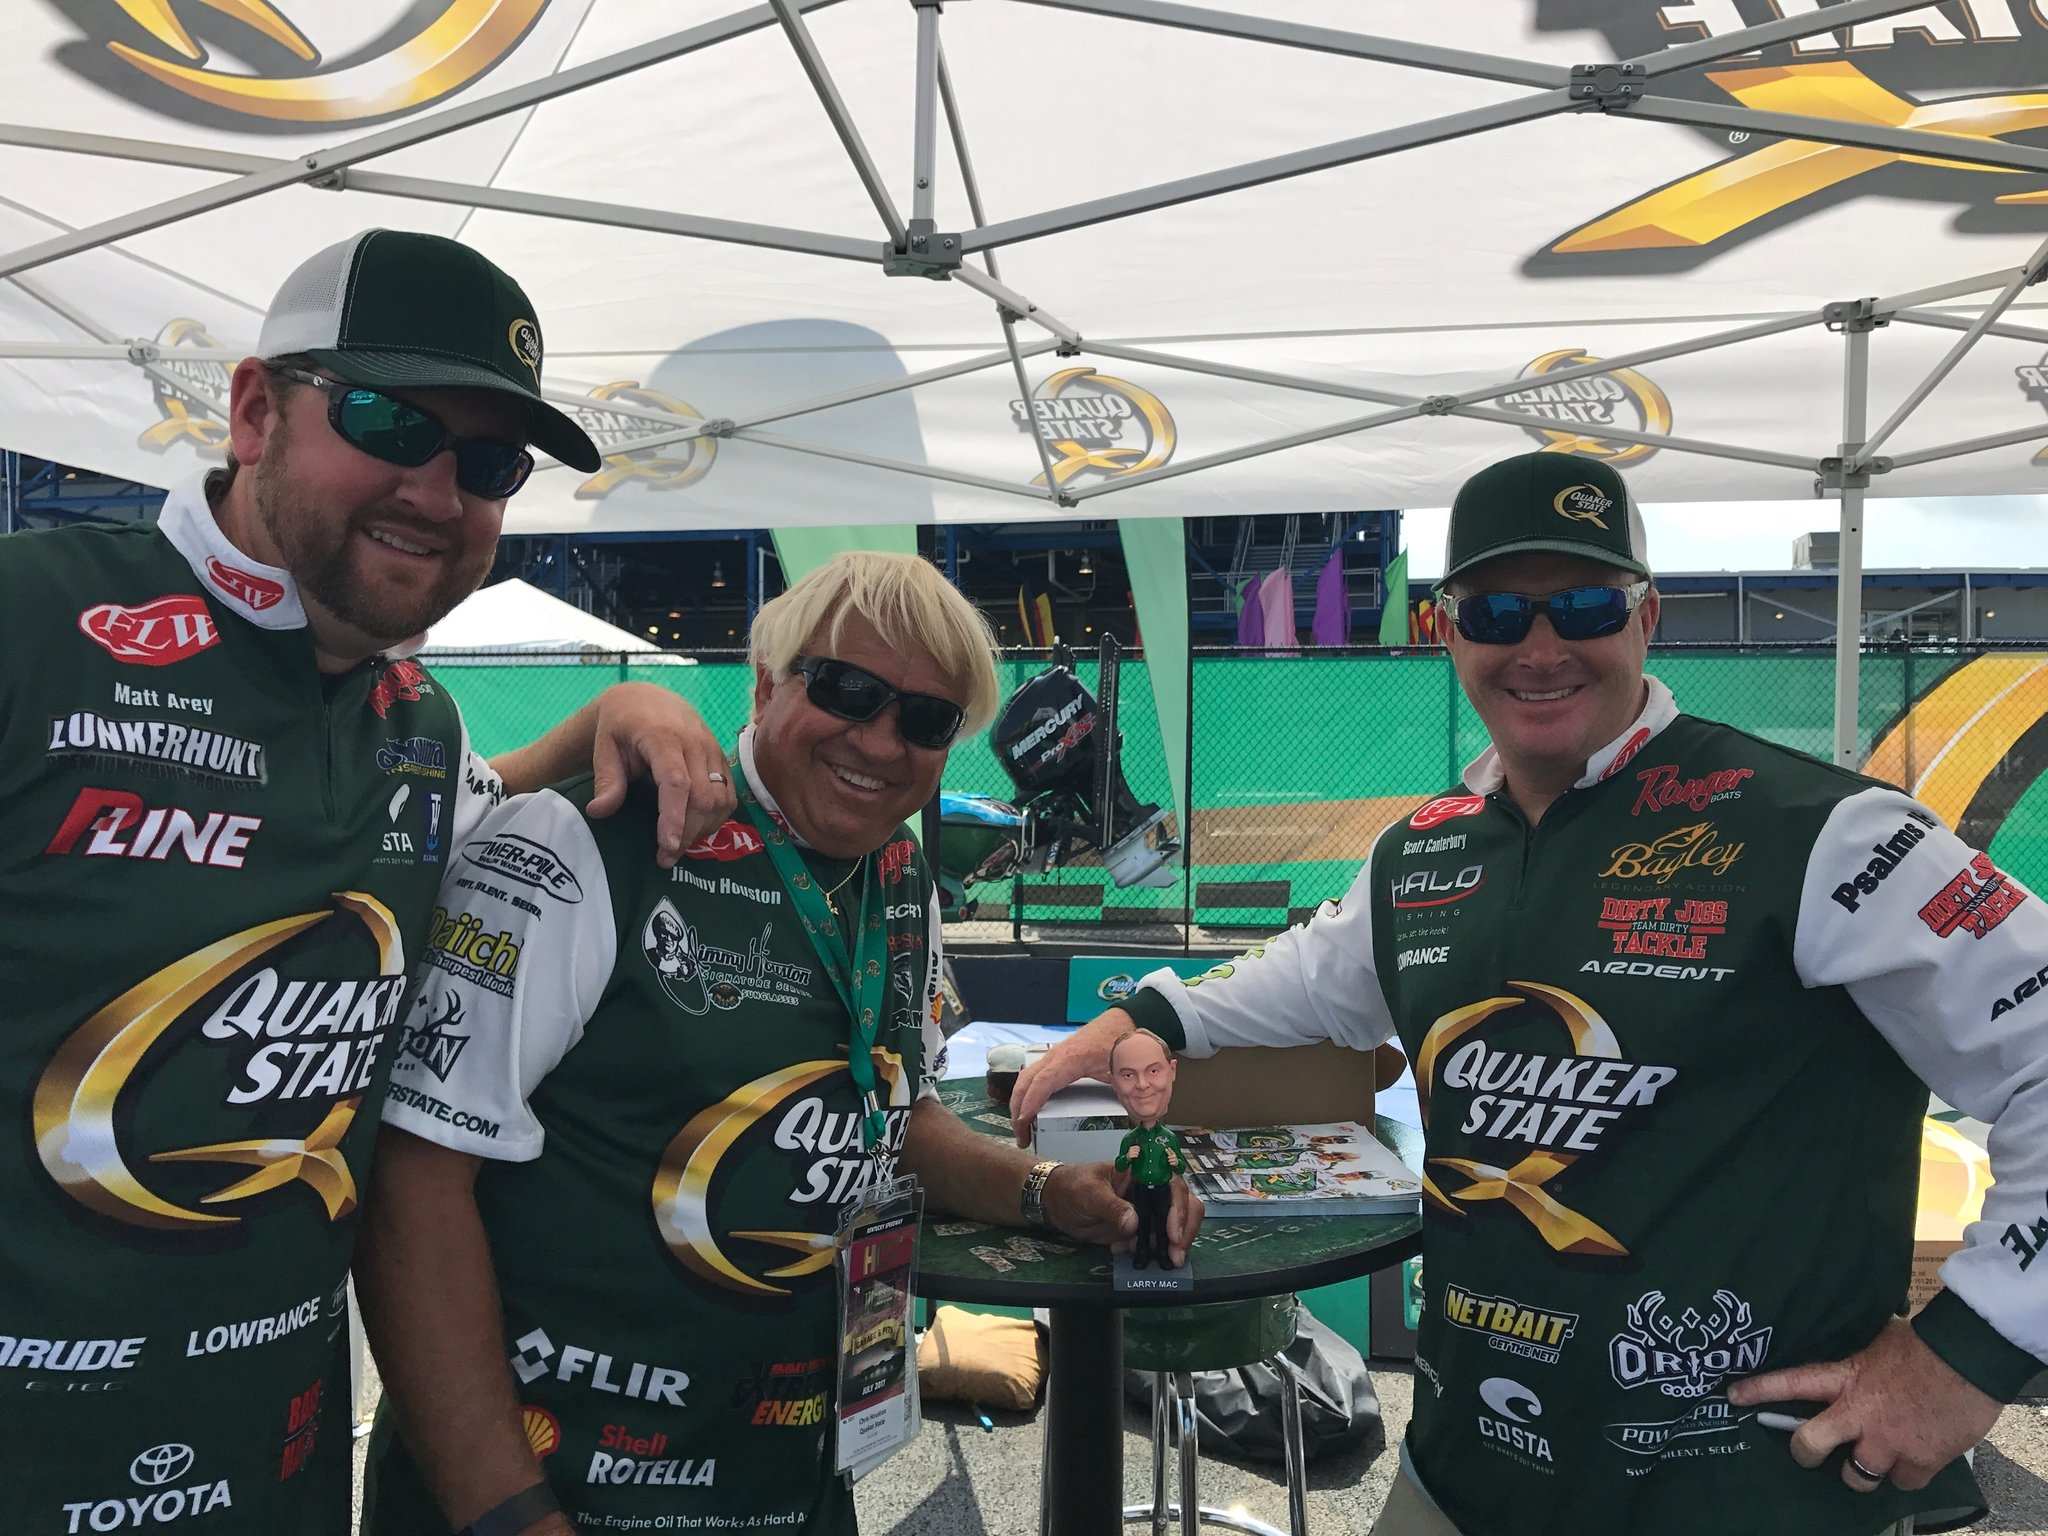 The FLW Anglers signing autographs for fans at the Quaker State 400.